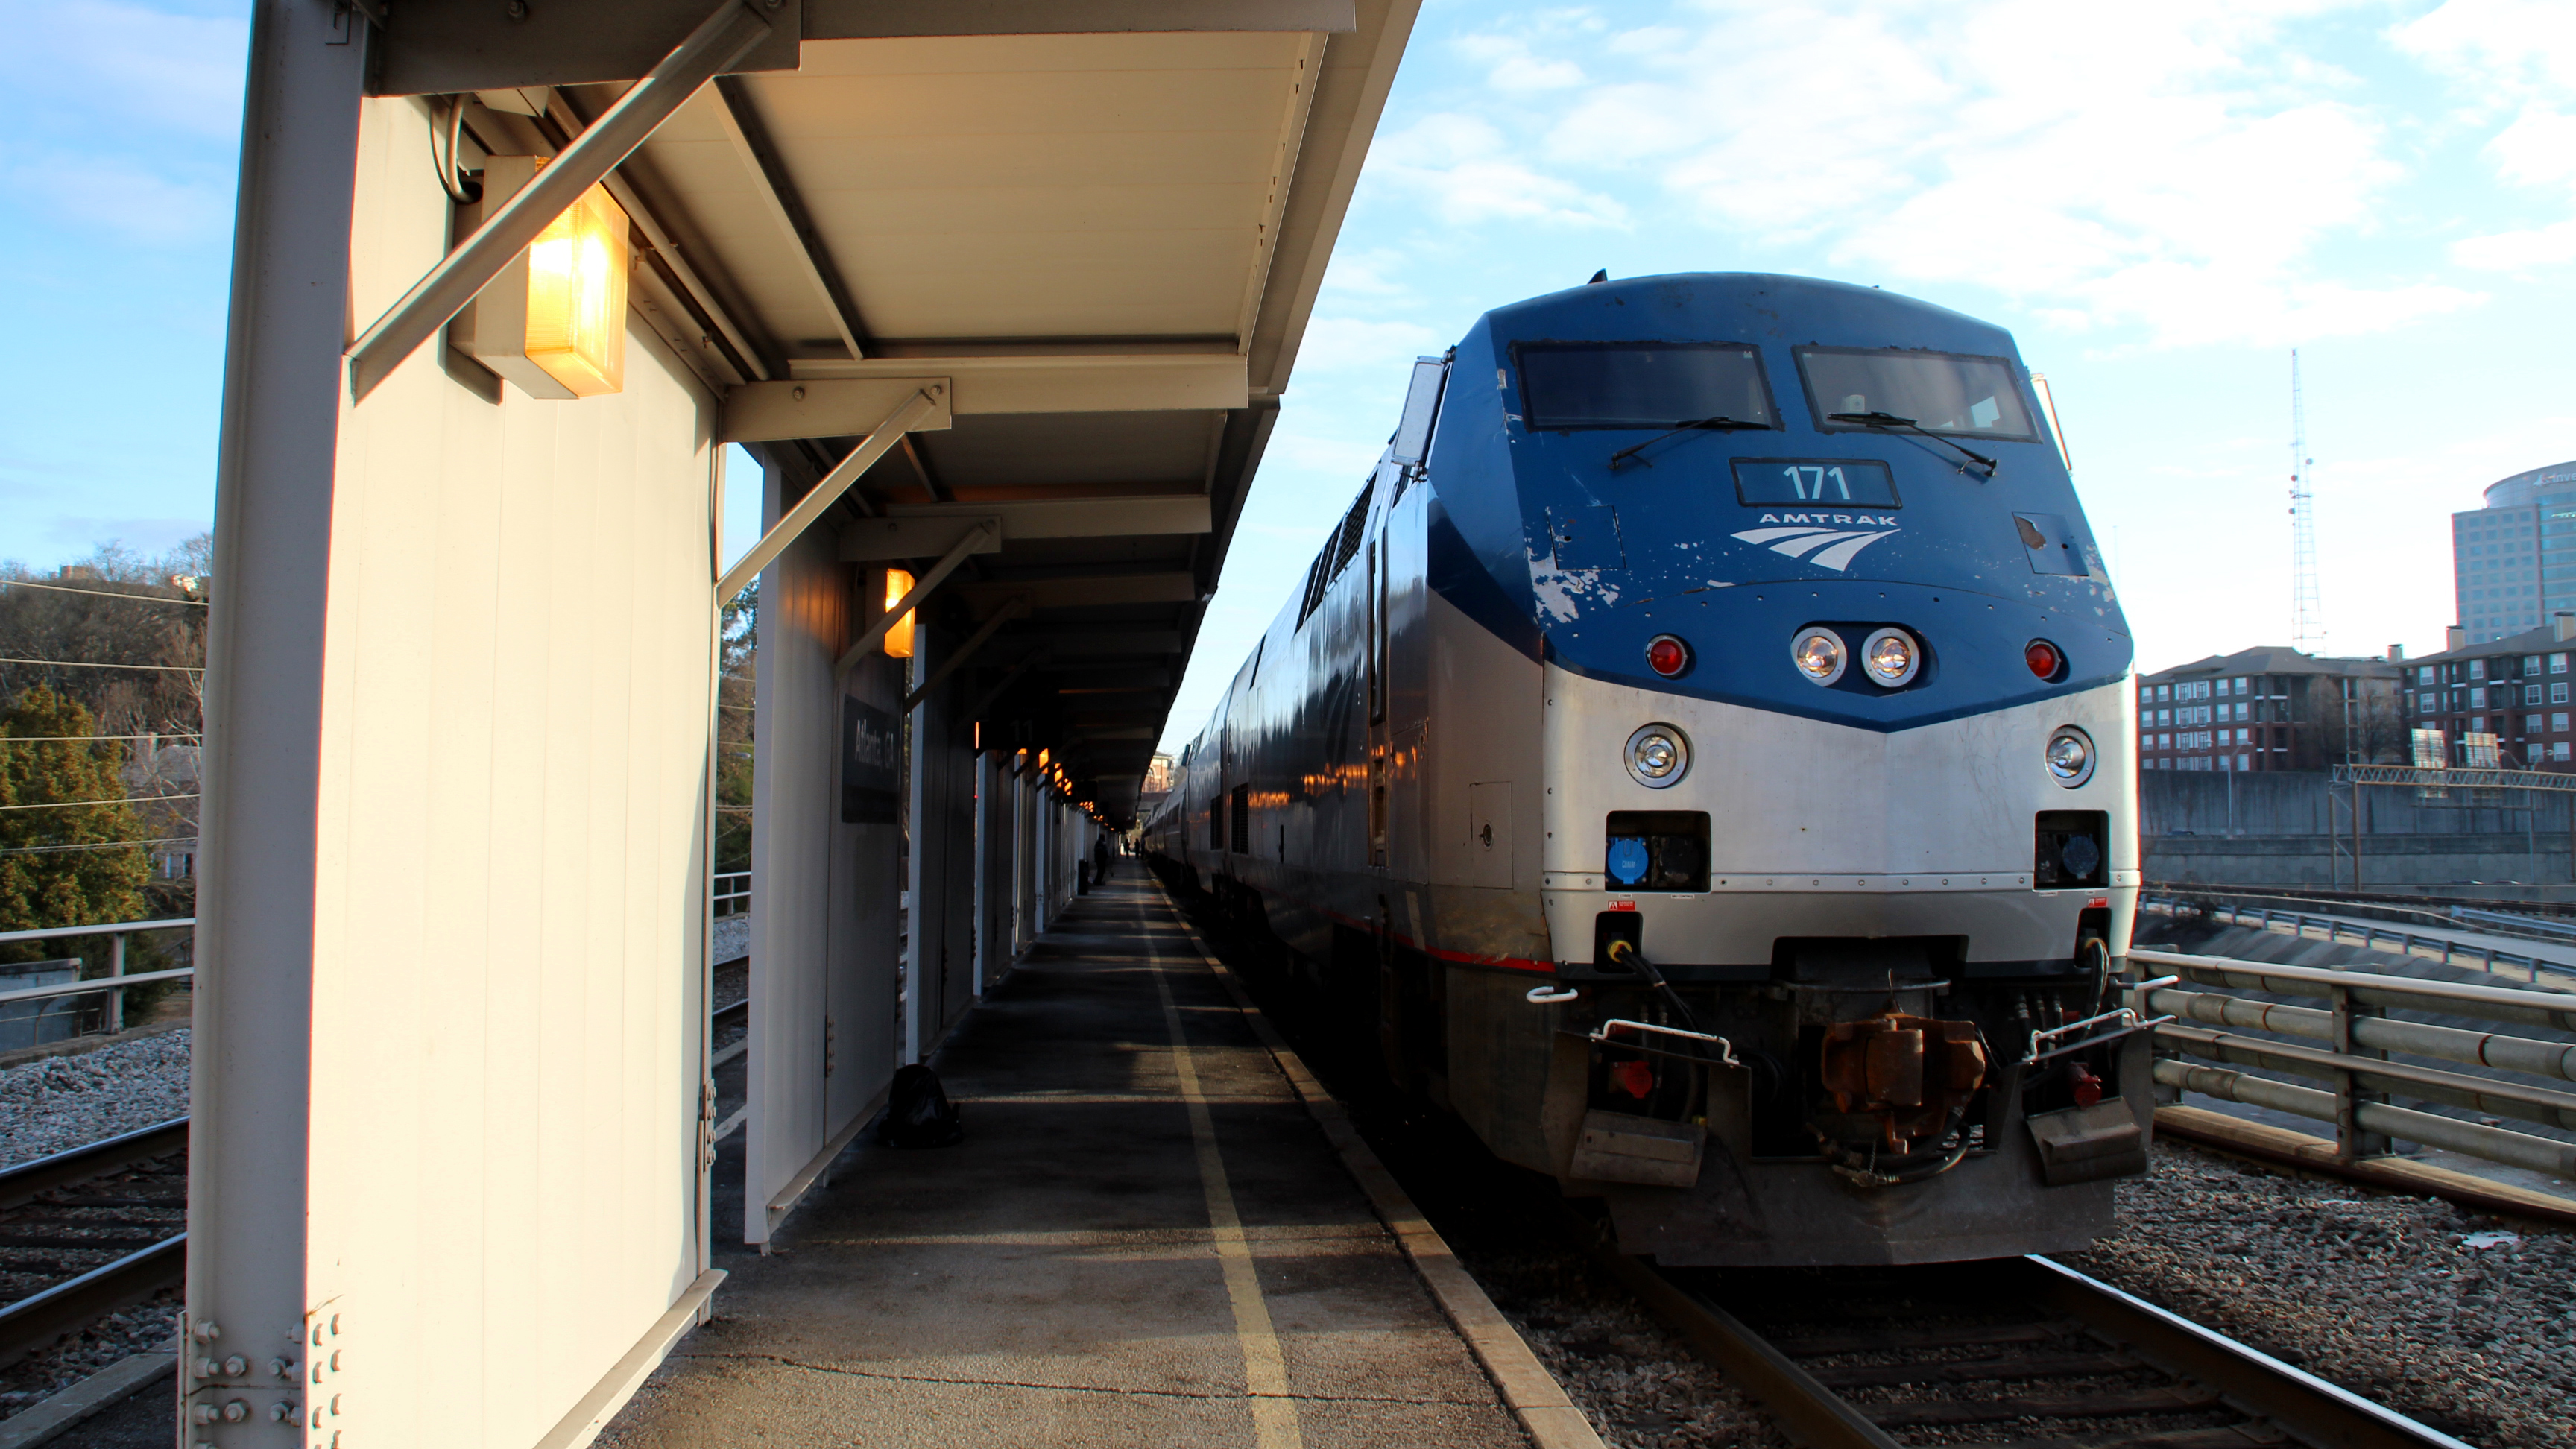 Amtrak S Crescent To New Orleans The Romance Of Rail Travel Cnn Travel